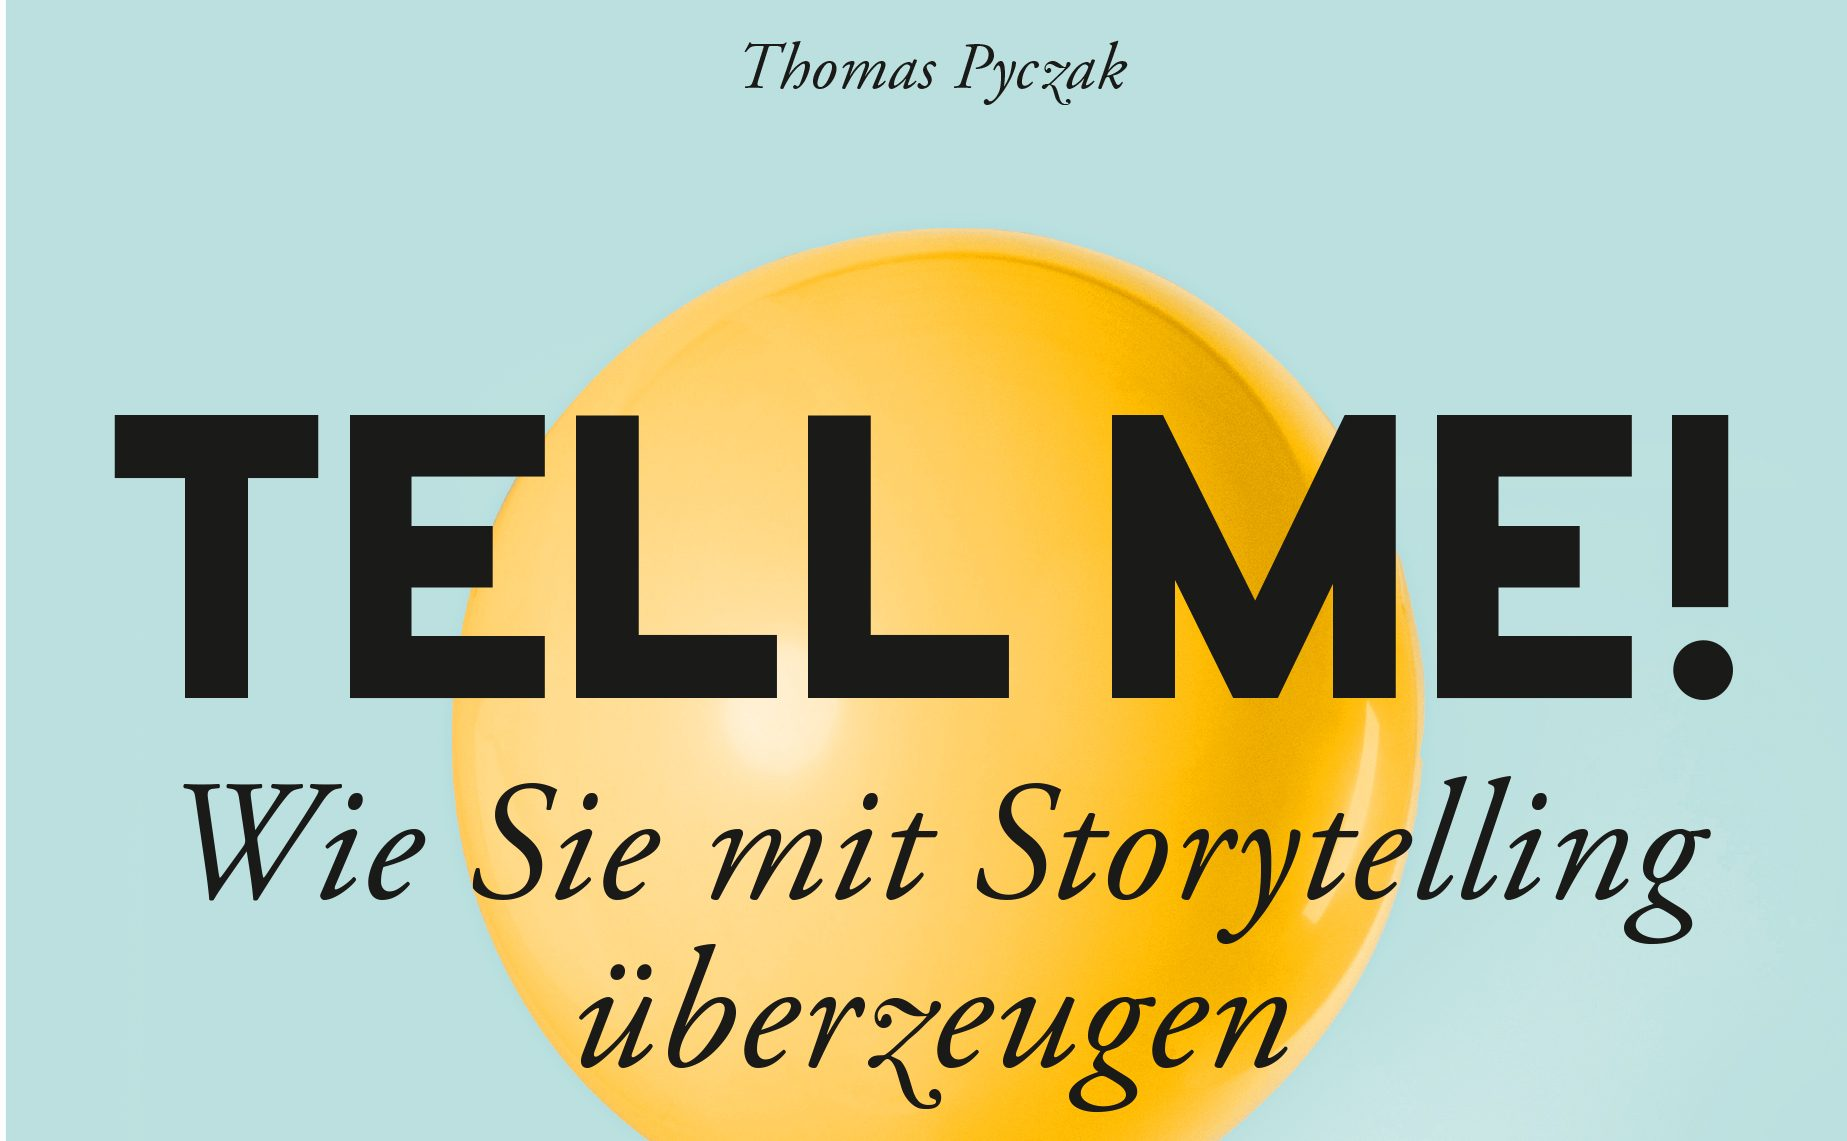 Tell Me Titel Thomas Pyczak